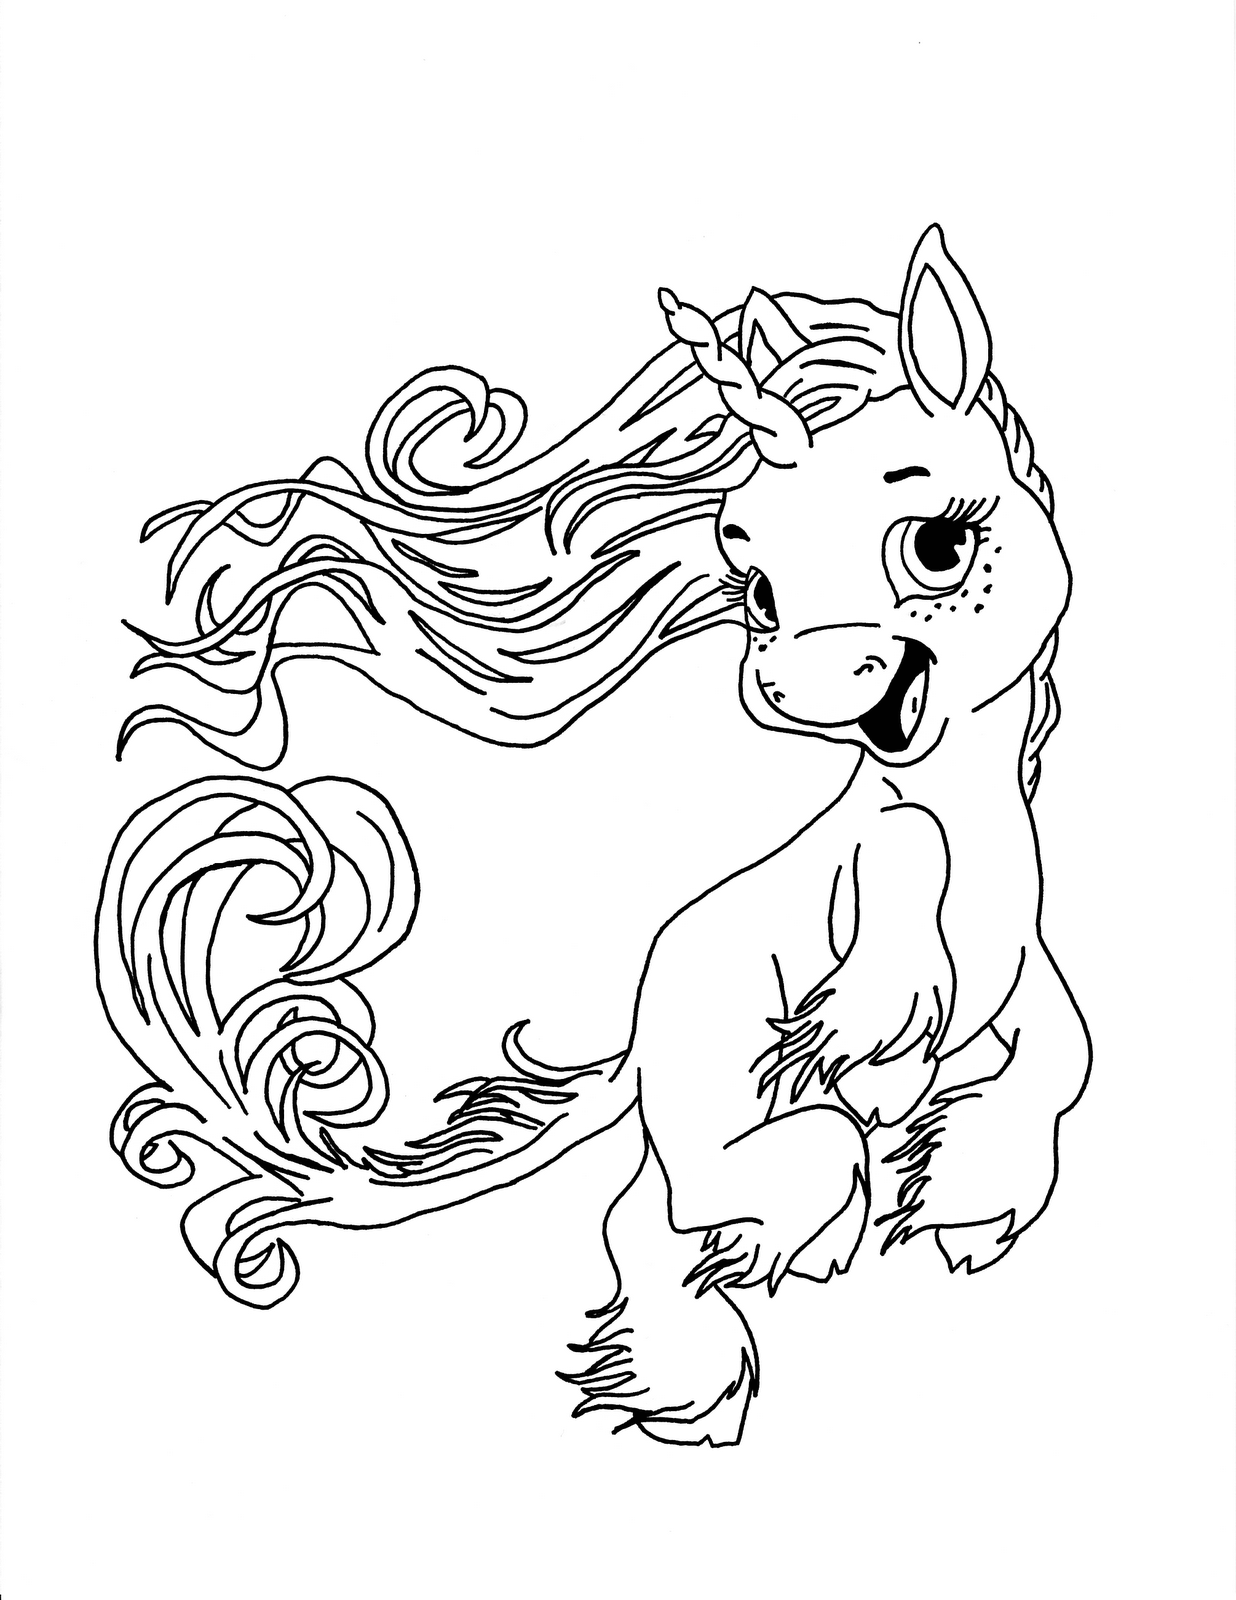 unicorn color pages for children activity shelter - Cute Baby Unicorns Coloring Pages